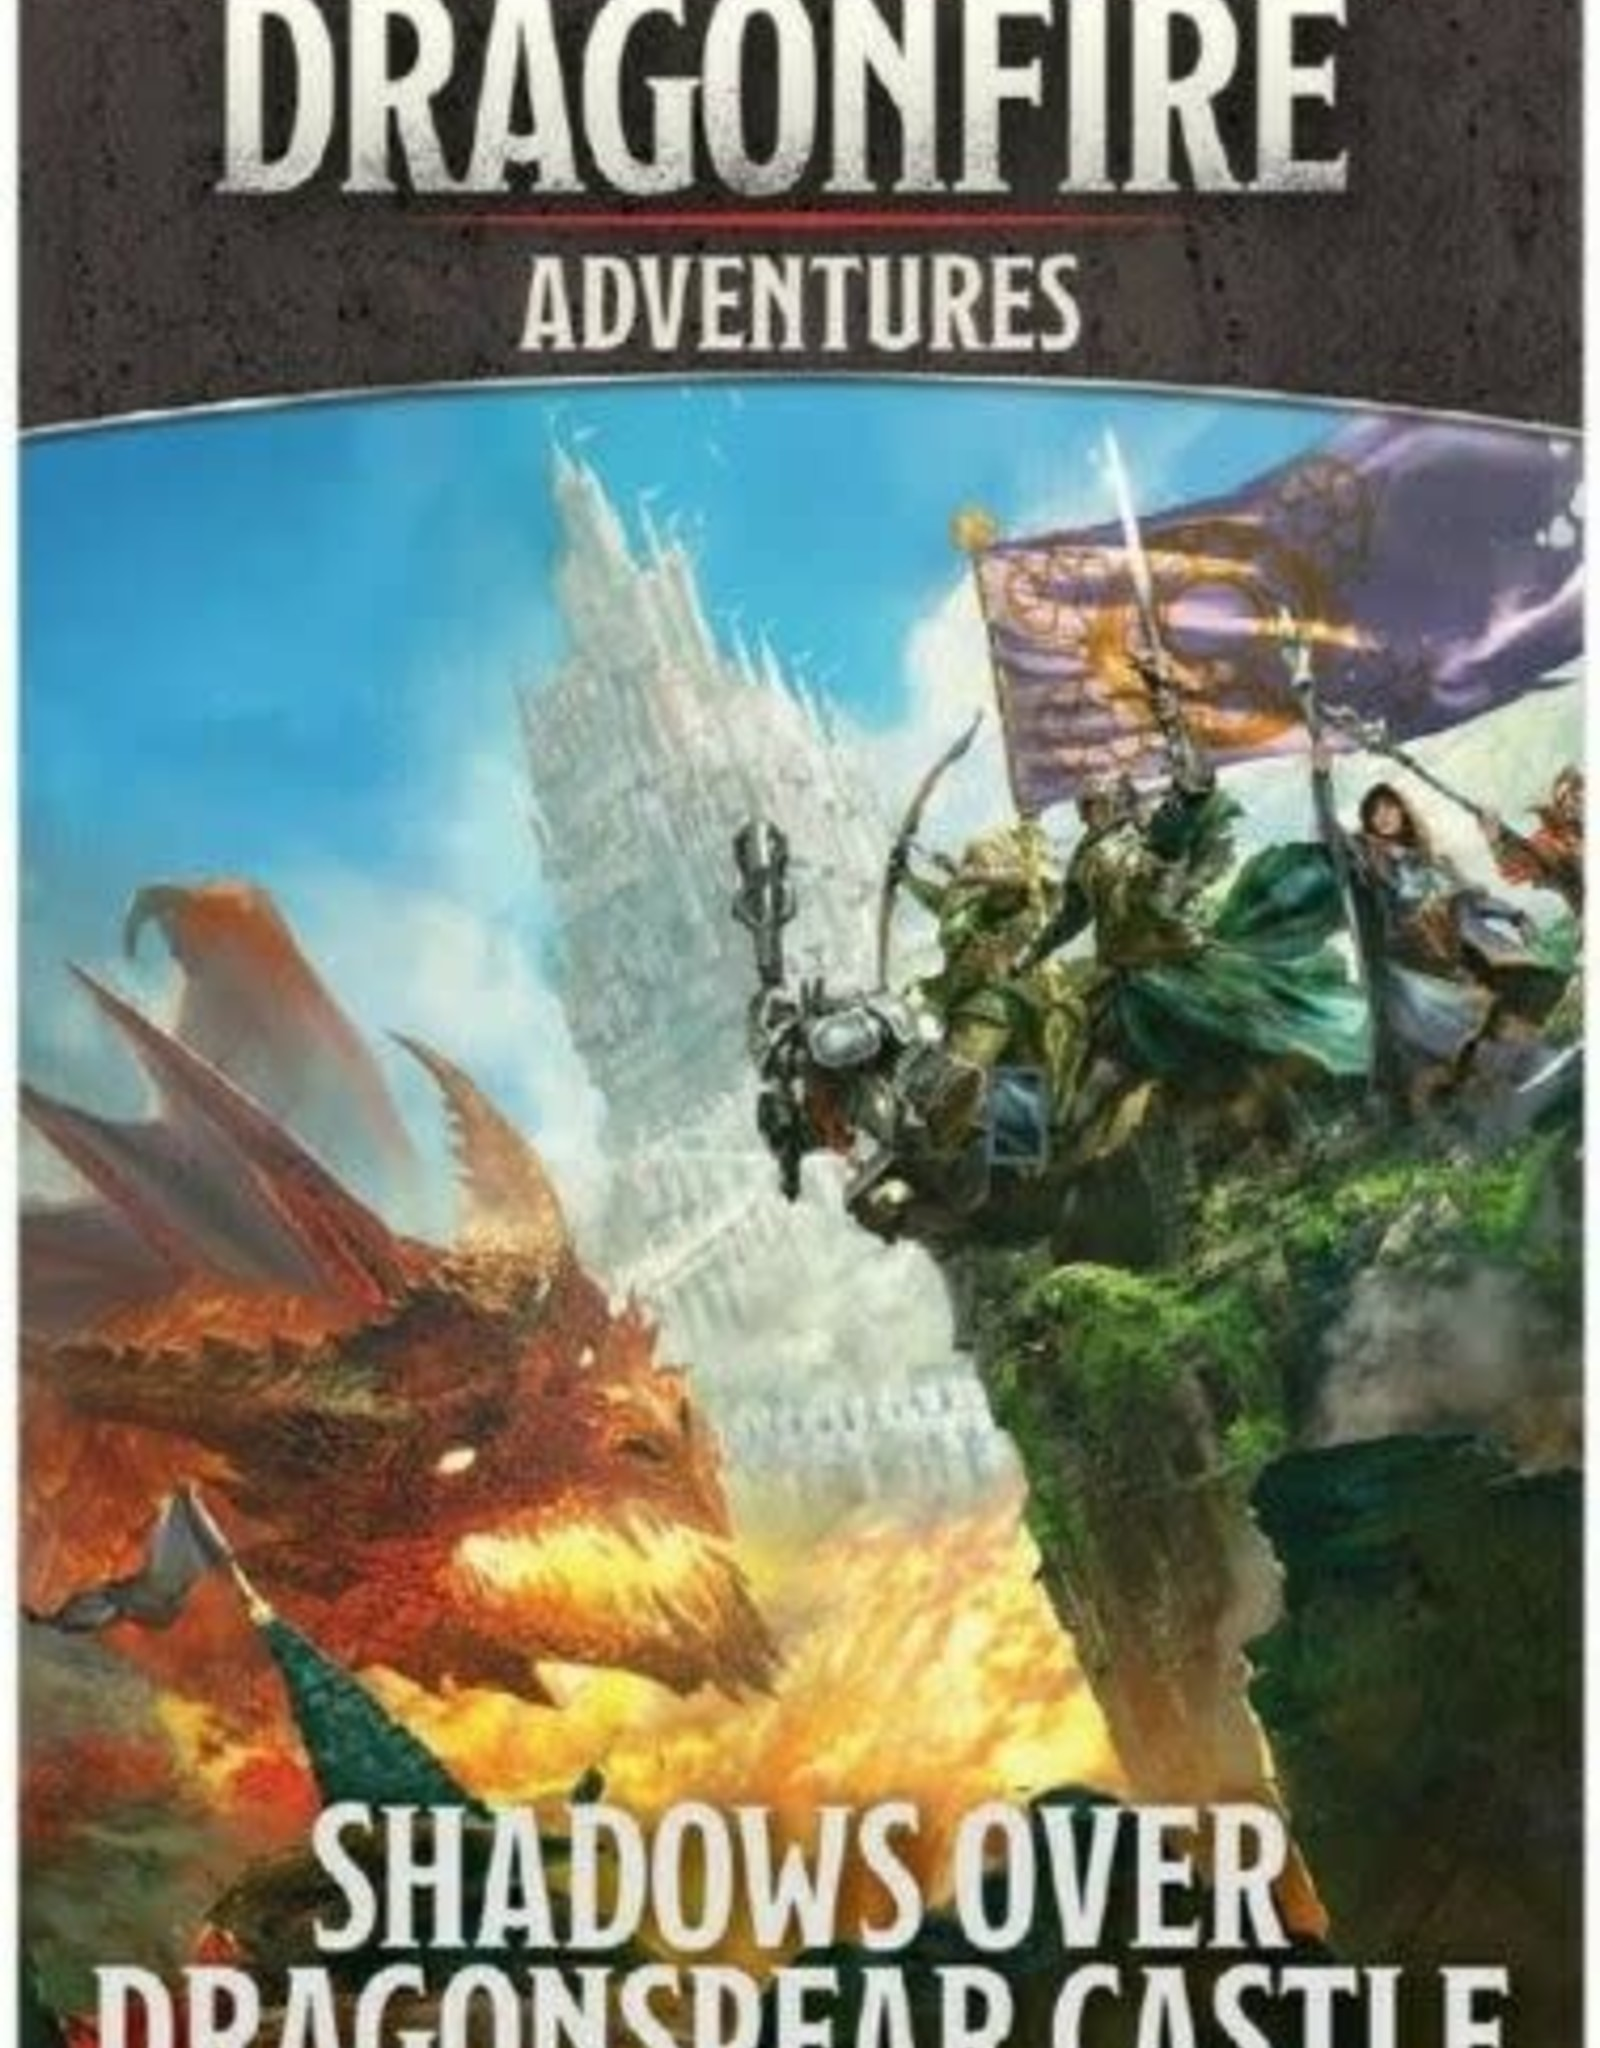 D&D Dragonfire DBG- Adventures - Dragonspear Castle